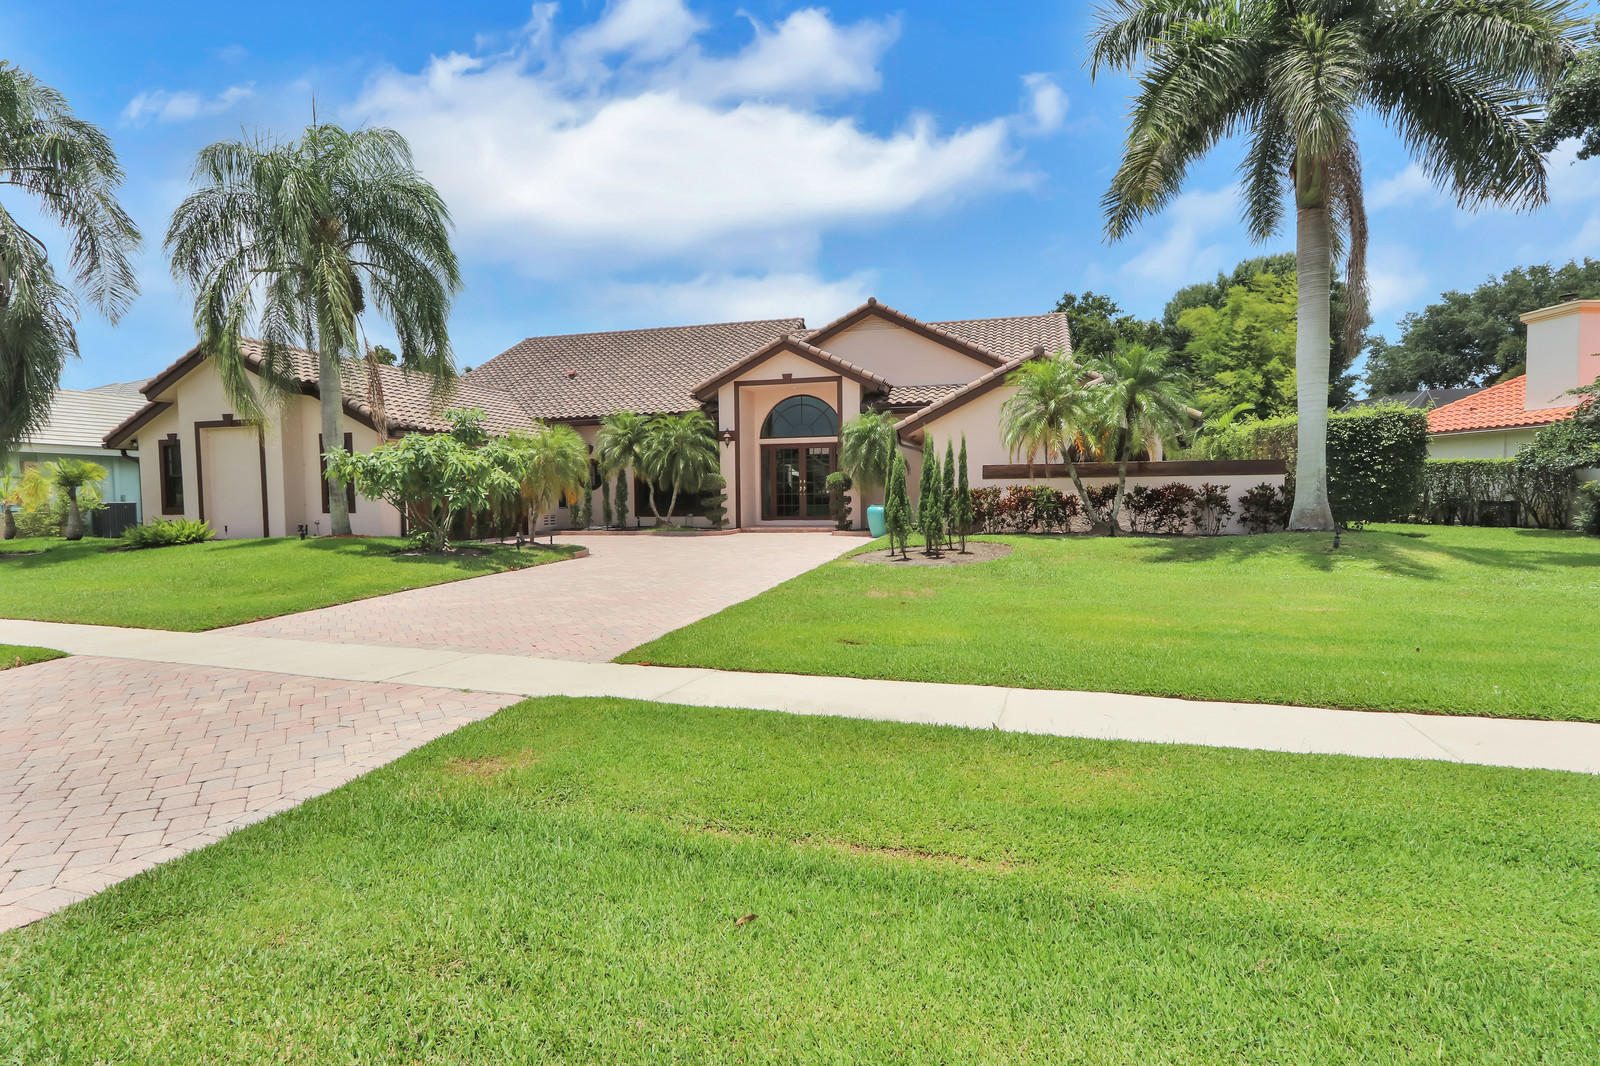 Home for sale in Polo West Wellington Florida